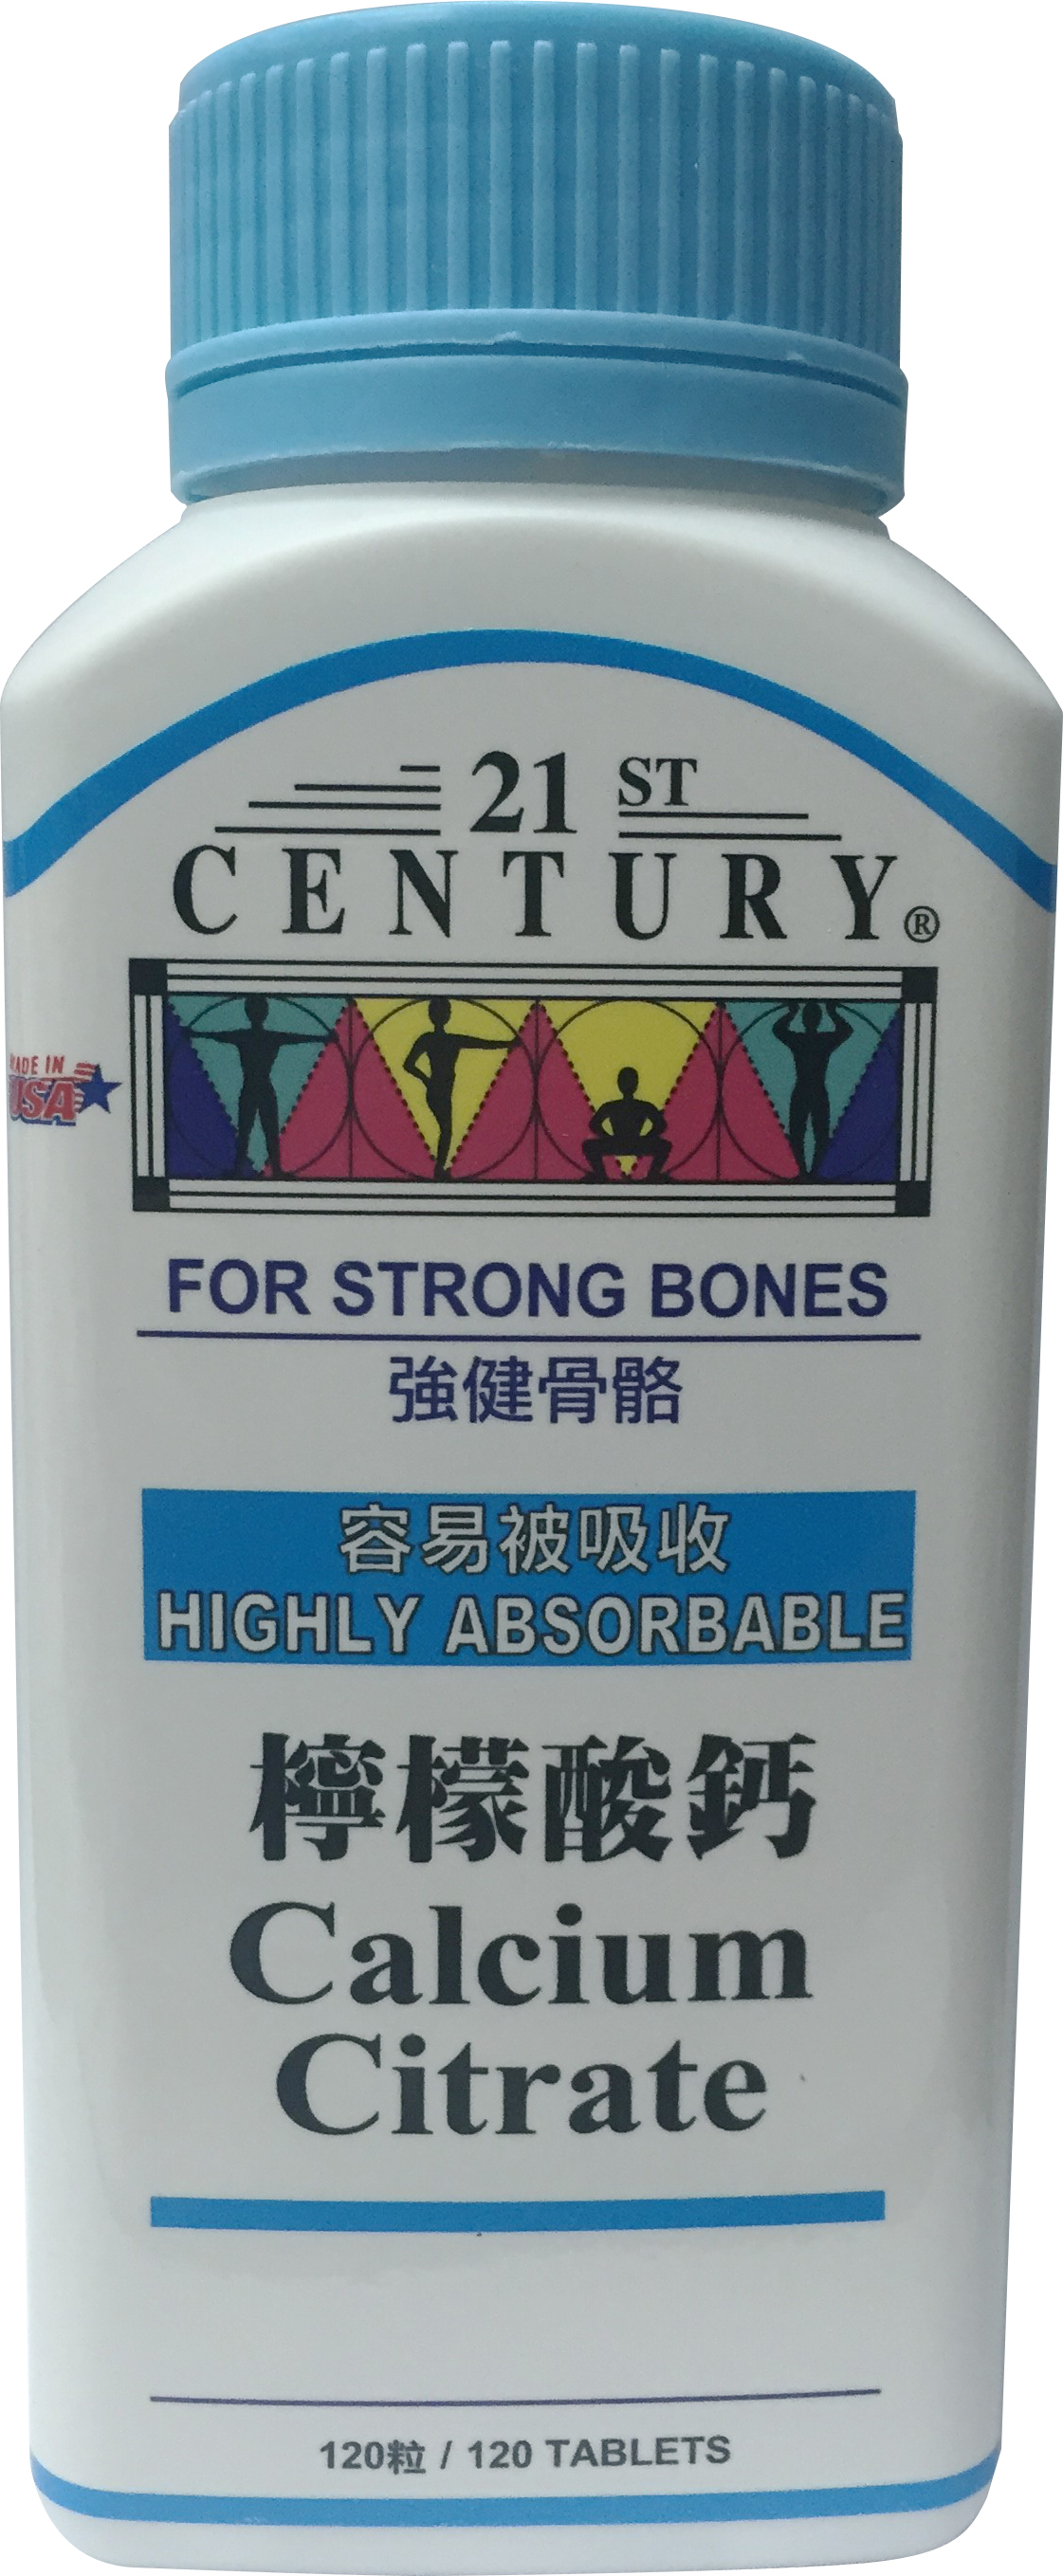 CALCIUM CITRATE,highly absorbable calcium for bone strength,120s